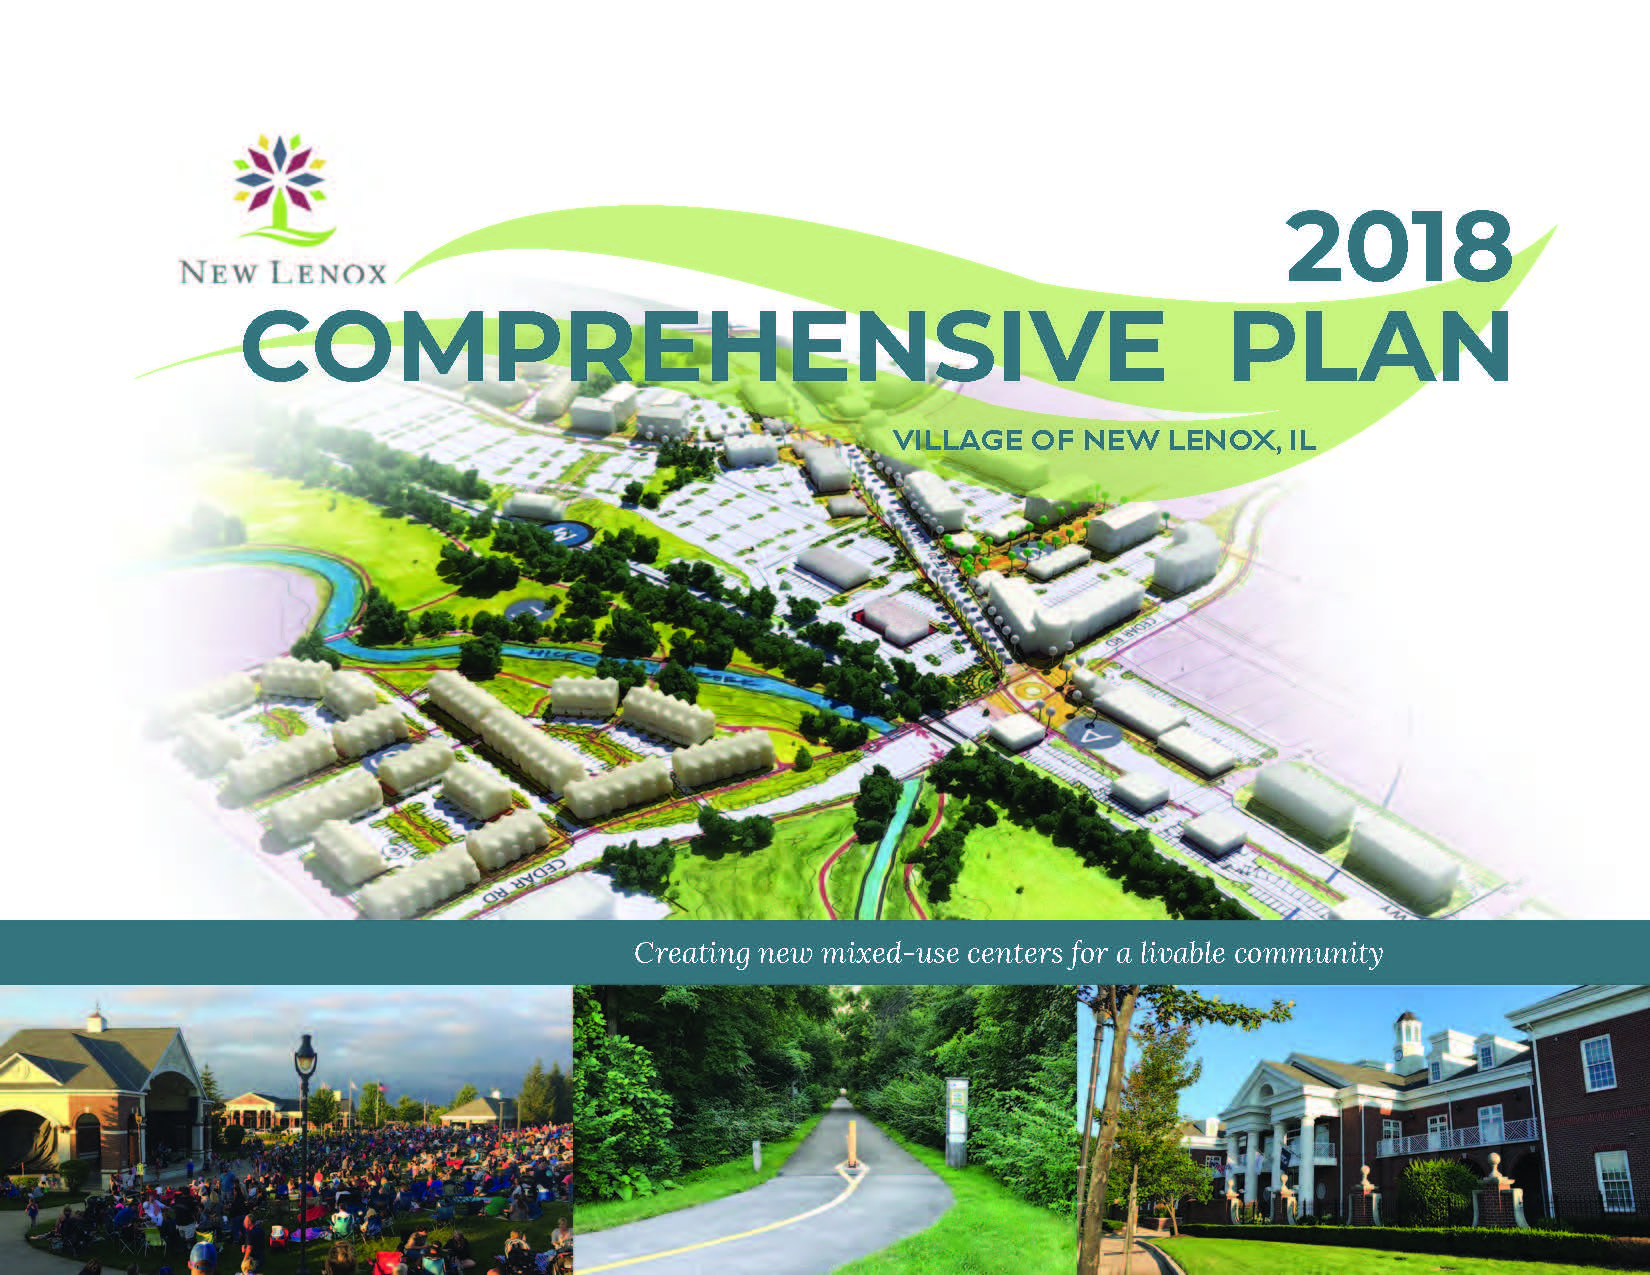 FINAL ADOPTED COMPREHENSIVE PLAN NEW LENOX 11-26-18 HR 1.jpg